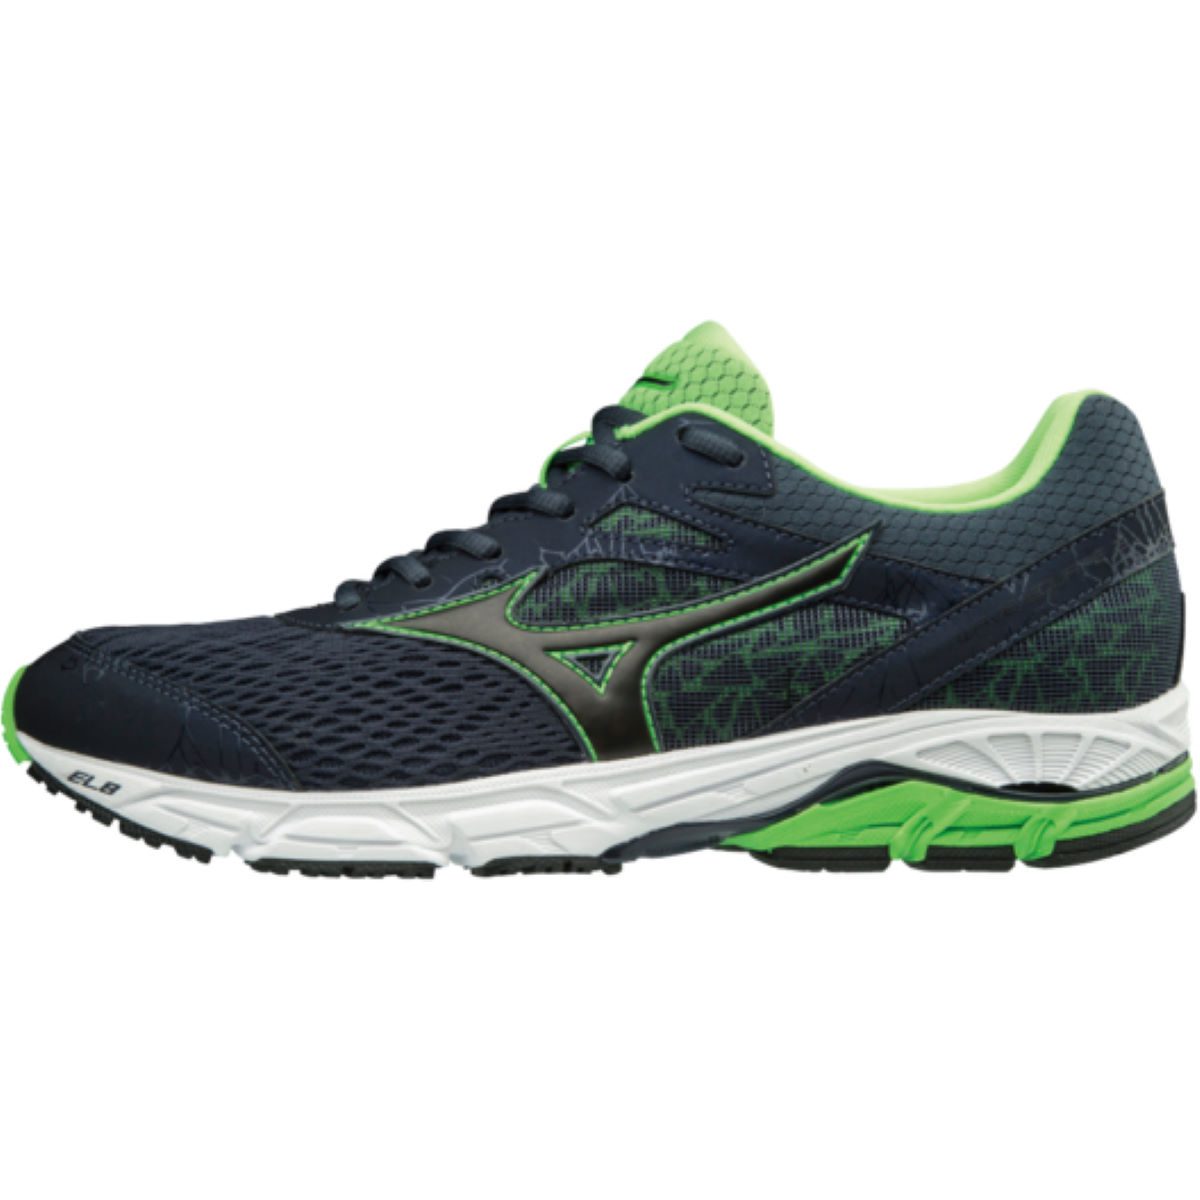 Chaussures Mizuno Wave Equate 2 - UK 13 Ombre Blue / Black /